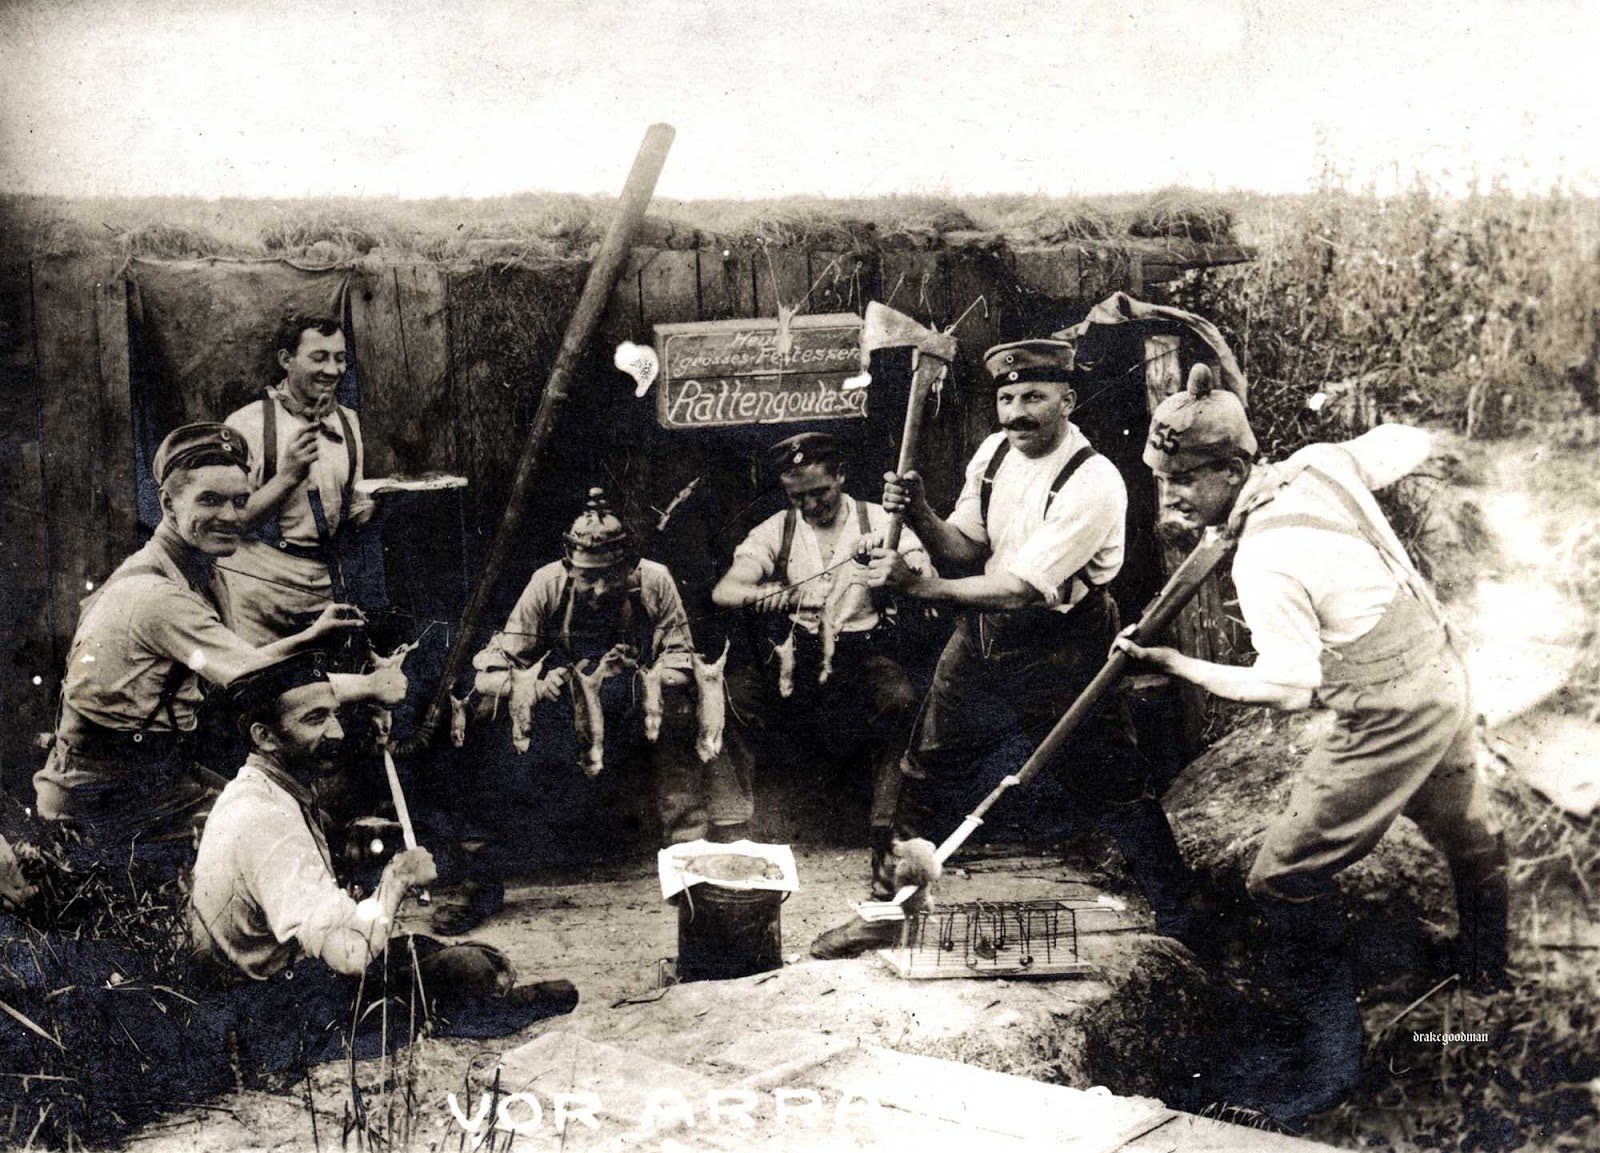 German artillerymen preparing several dead rats and one hapless mouse (or a skittish rat) for their evening repast.